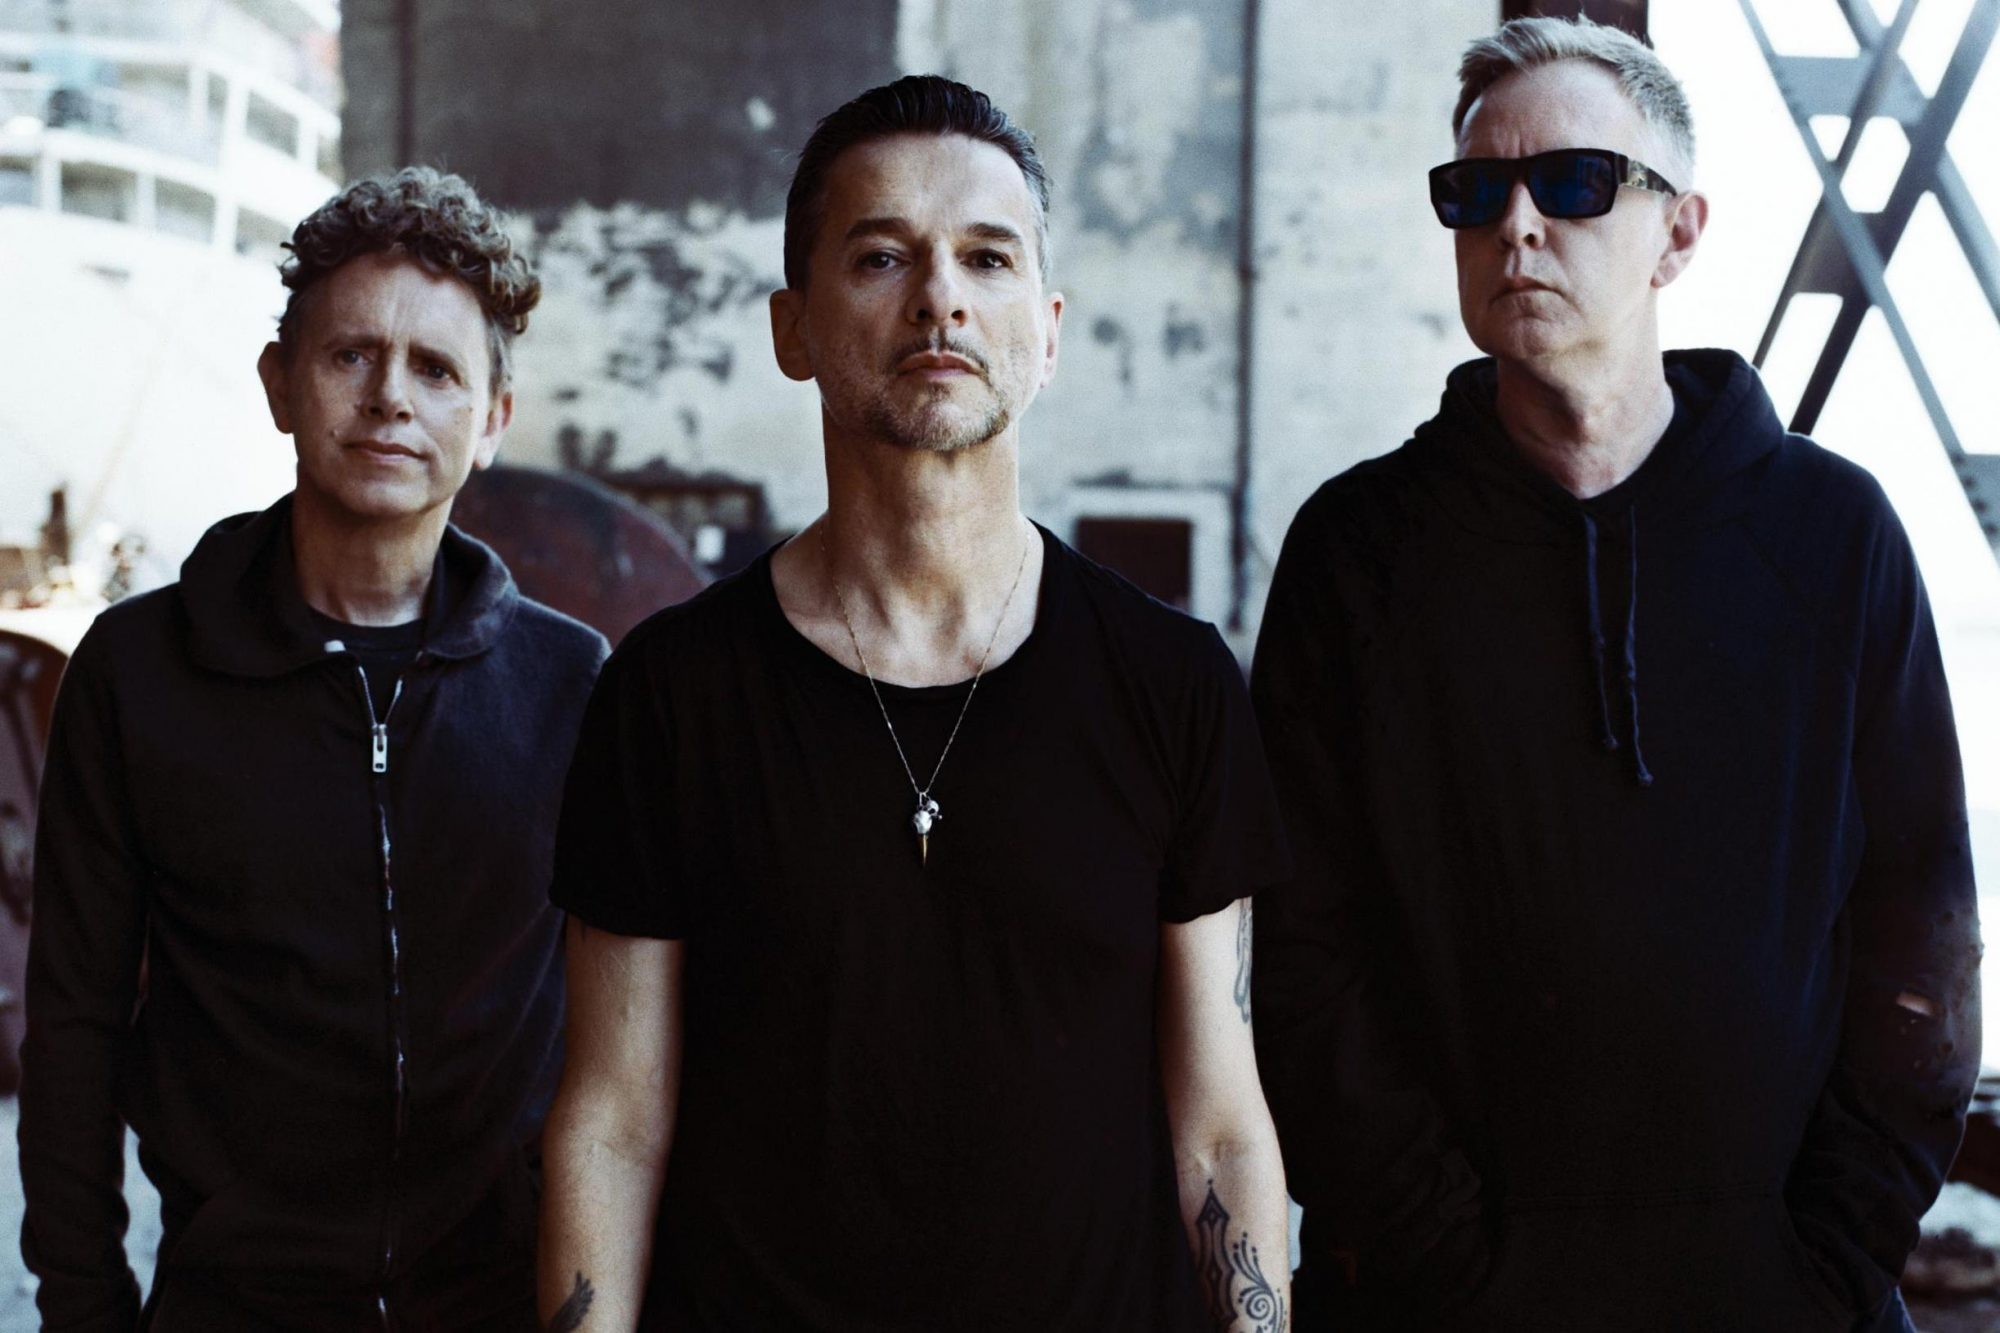 La Historia De Depeche Mode En 5 De Sus Mejores Canciones Por Beto Lagarda Science Of Noise Rock Magazine